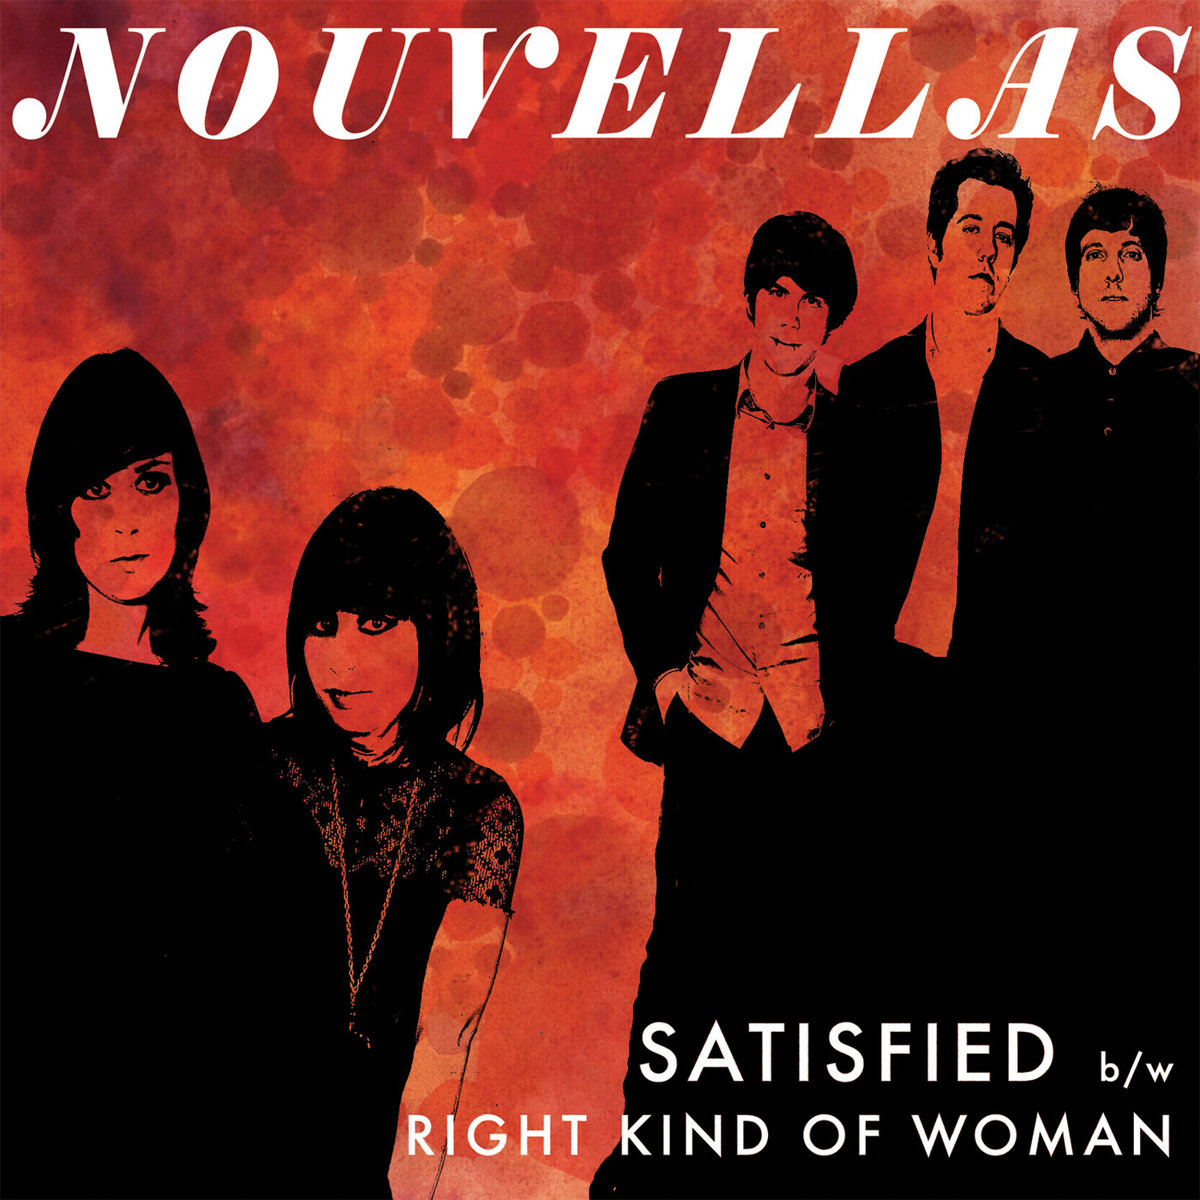 Nouvellas - Satisfied b/w Right Kind Of Woman